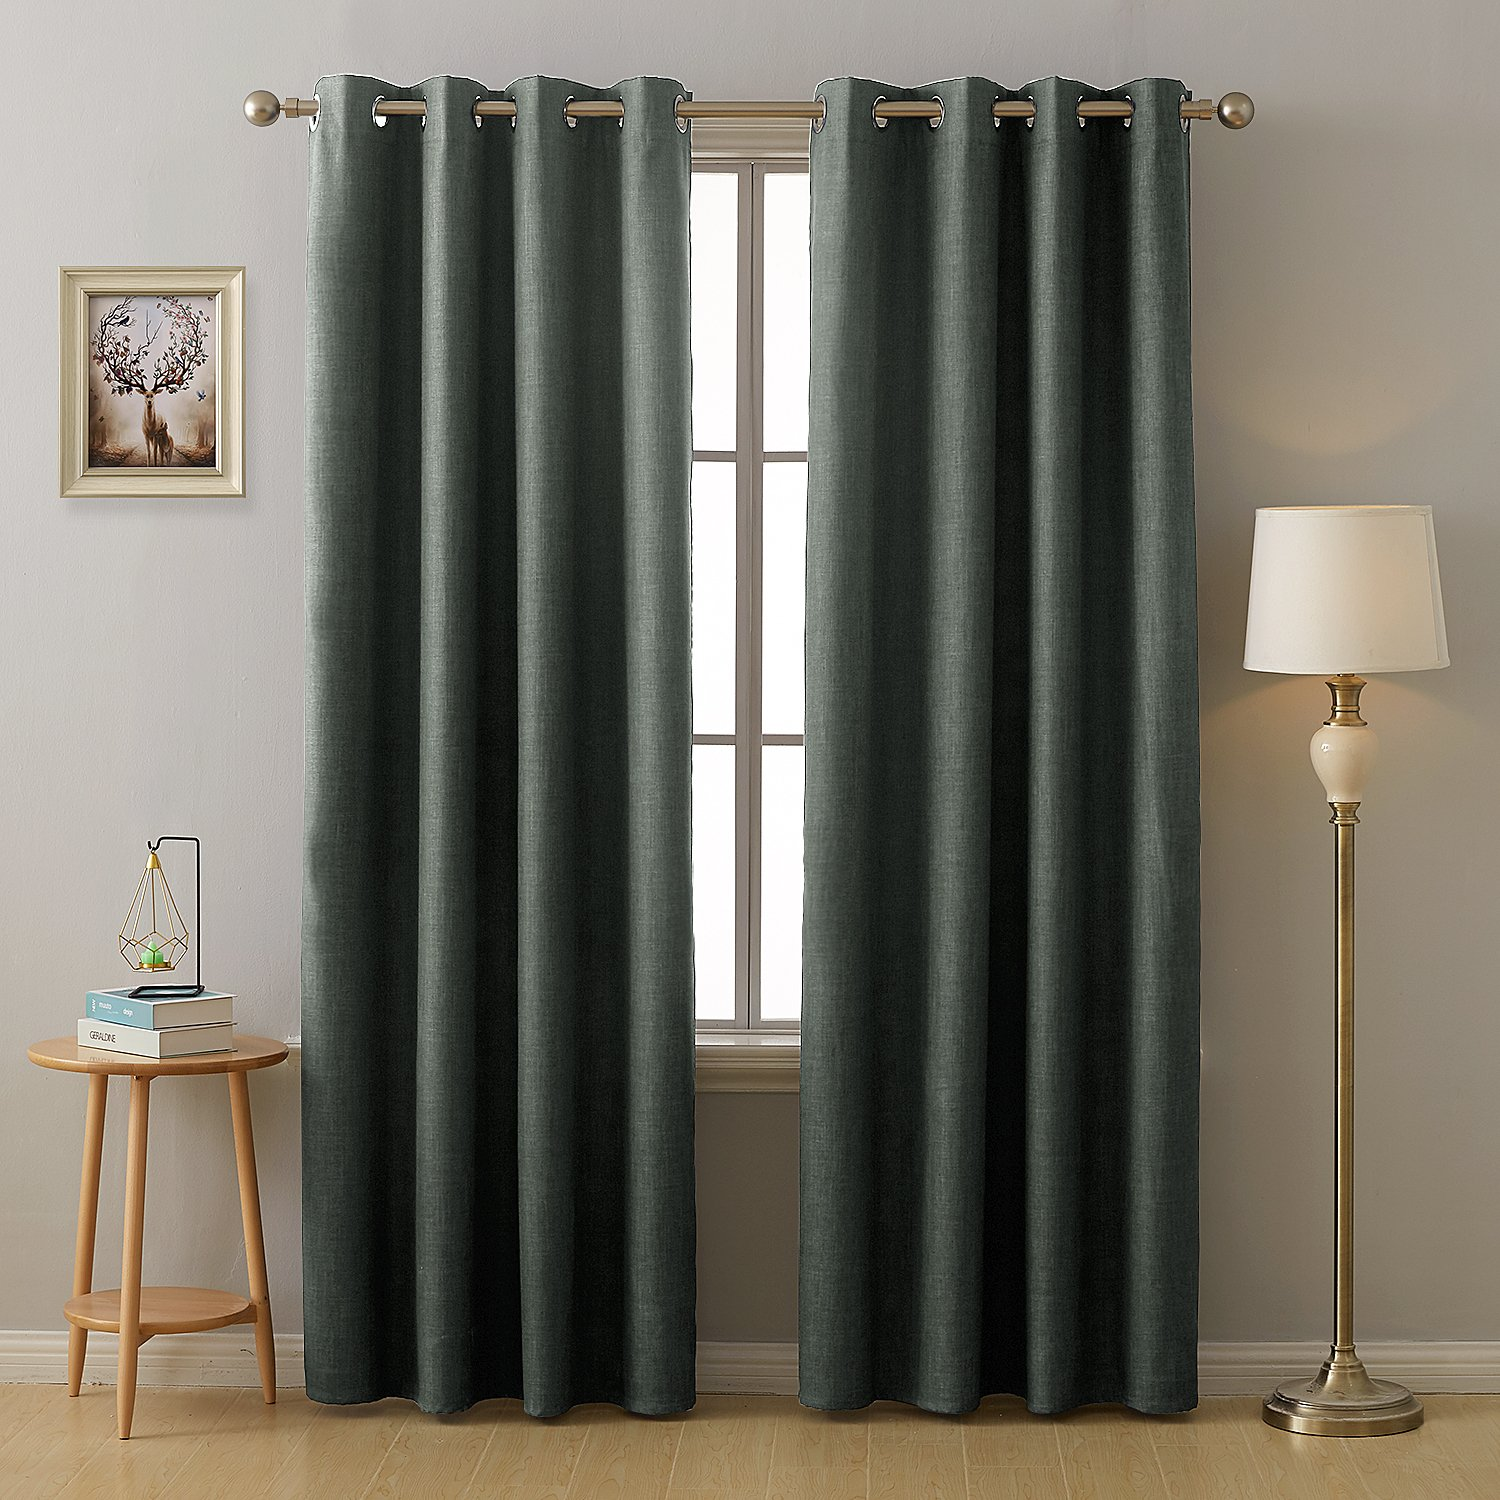 Amazoncom Deconovo Total Blackout Curtains With 3 Pass Energy